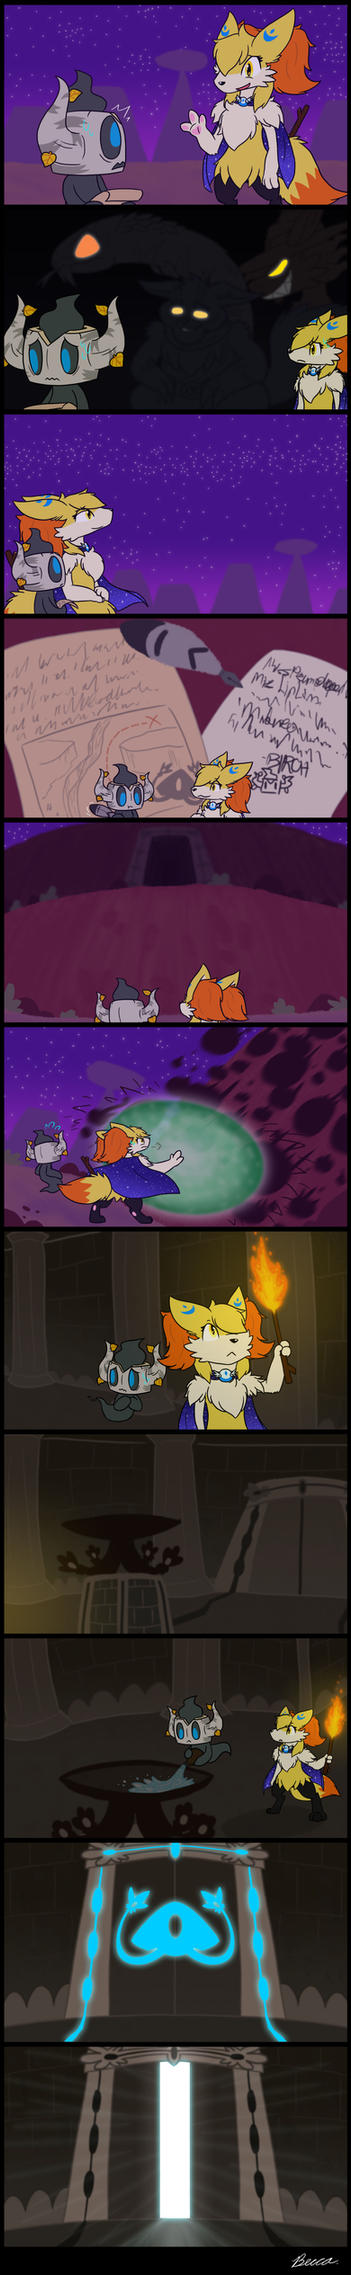 ToT - Hopes On Fire - Page 1/2 by Snowbound-Becca